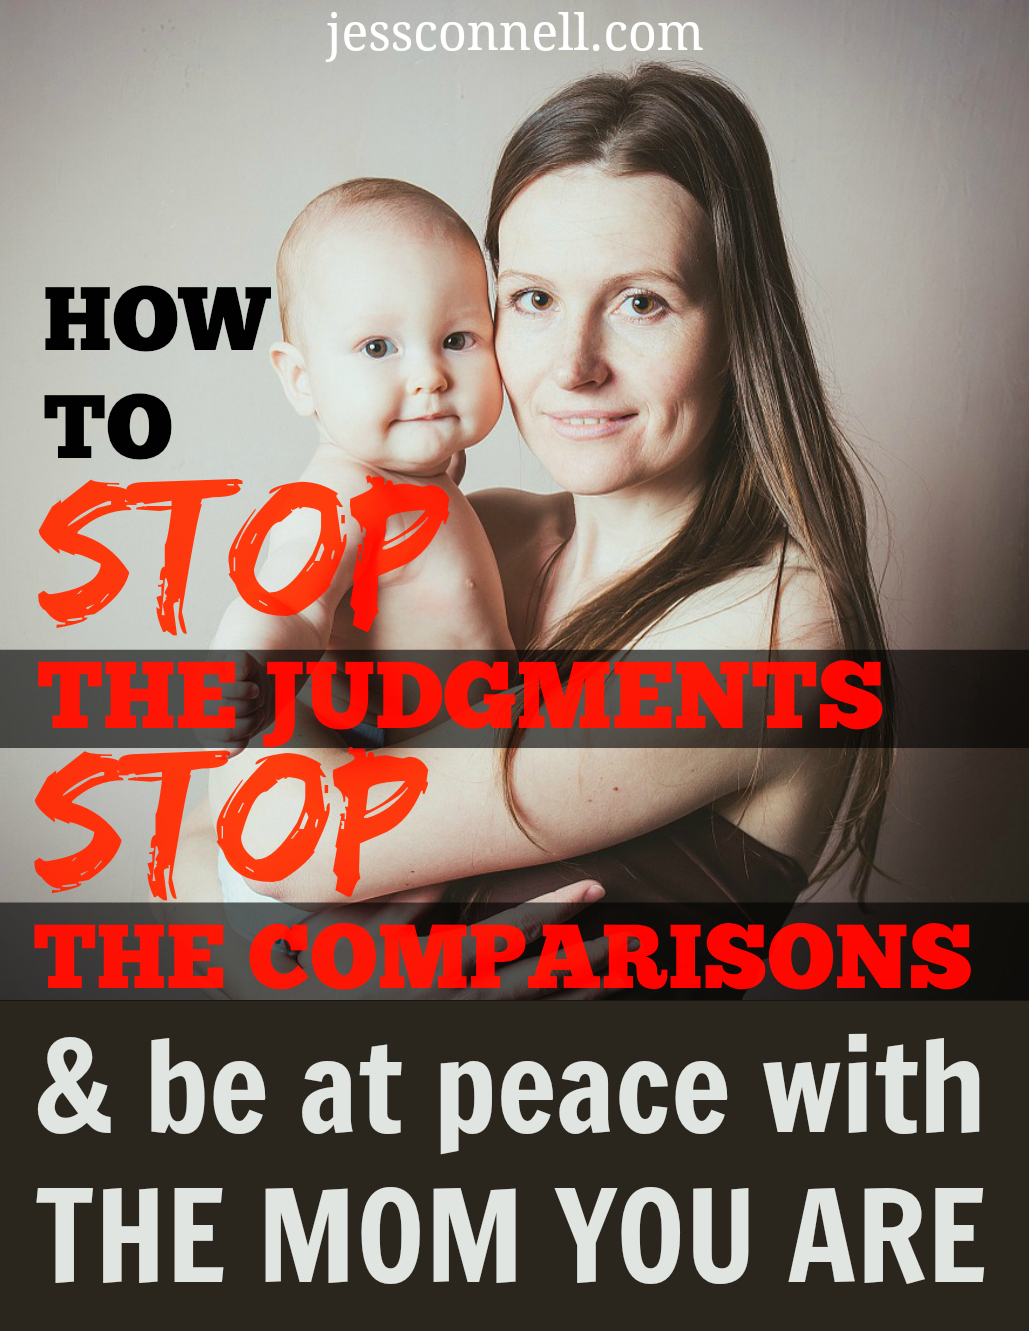 How to STOP the Judgments, STOP the Comparisons, and Be At Peace With the Mom You Are // jessconnell.com